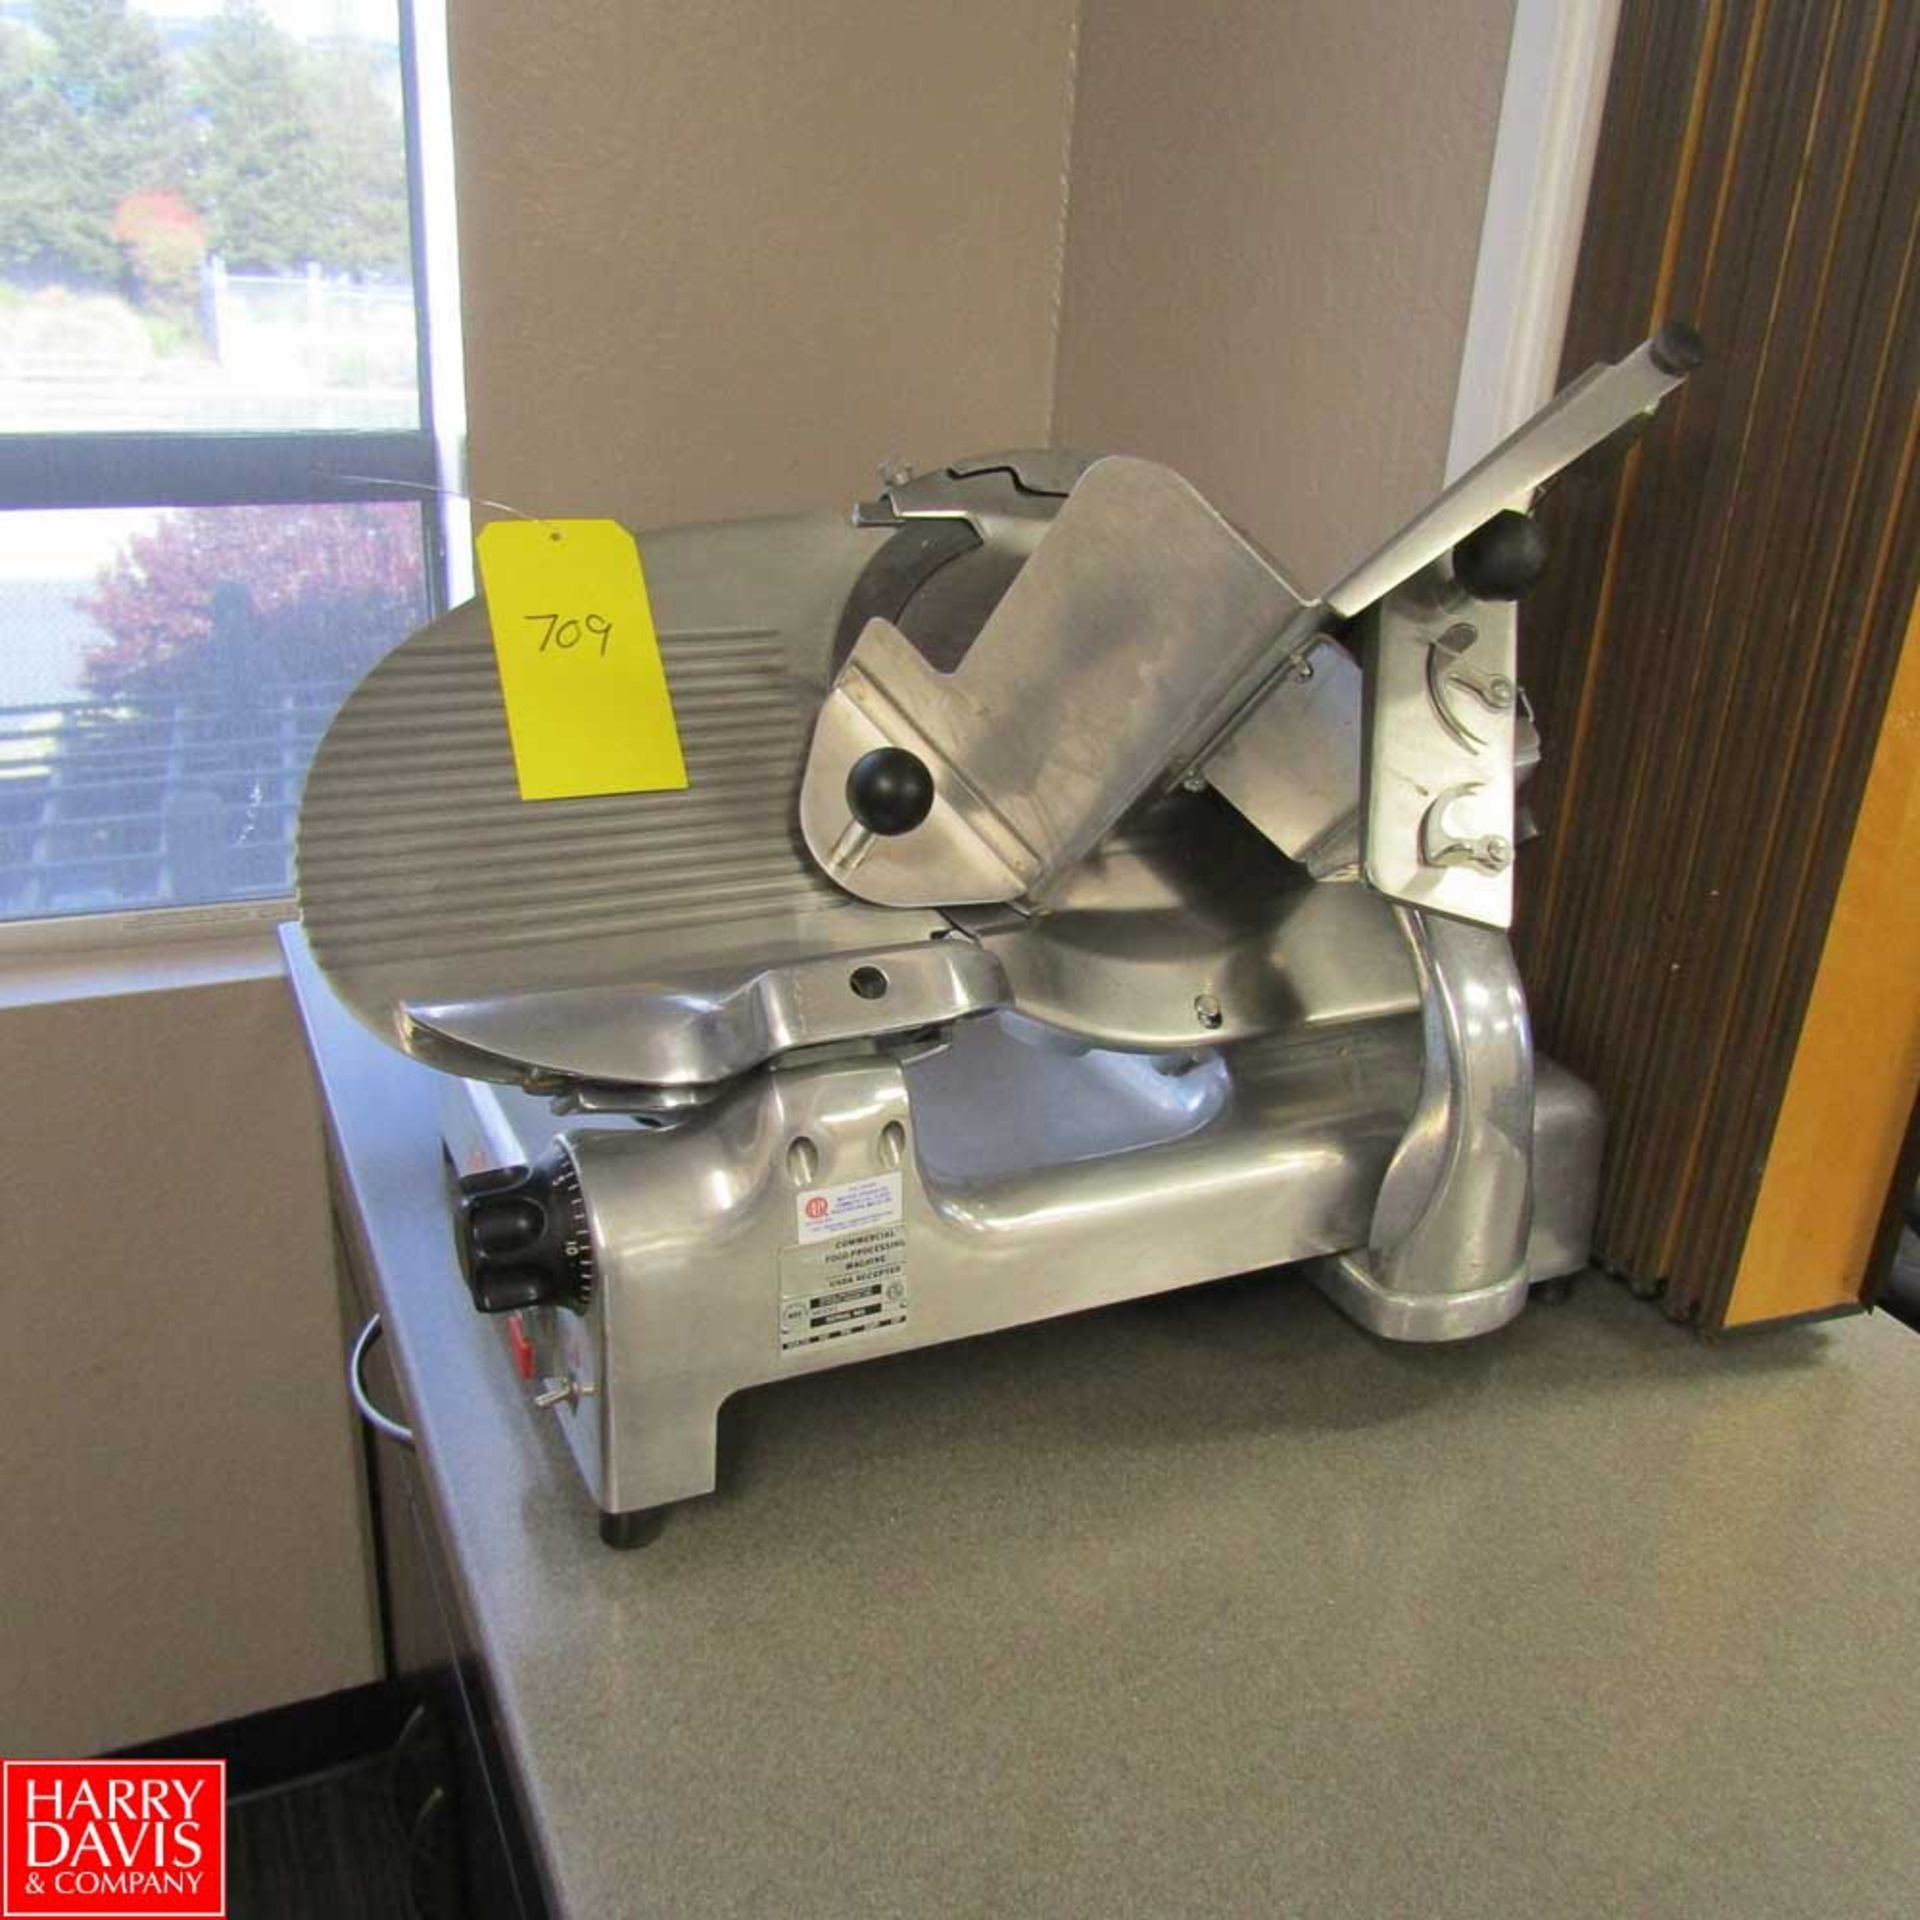 Lot 709 - Commercial Food Processing Company Slicer Model 909 Rigging Fee: 25